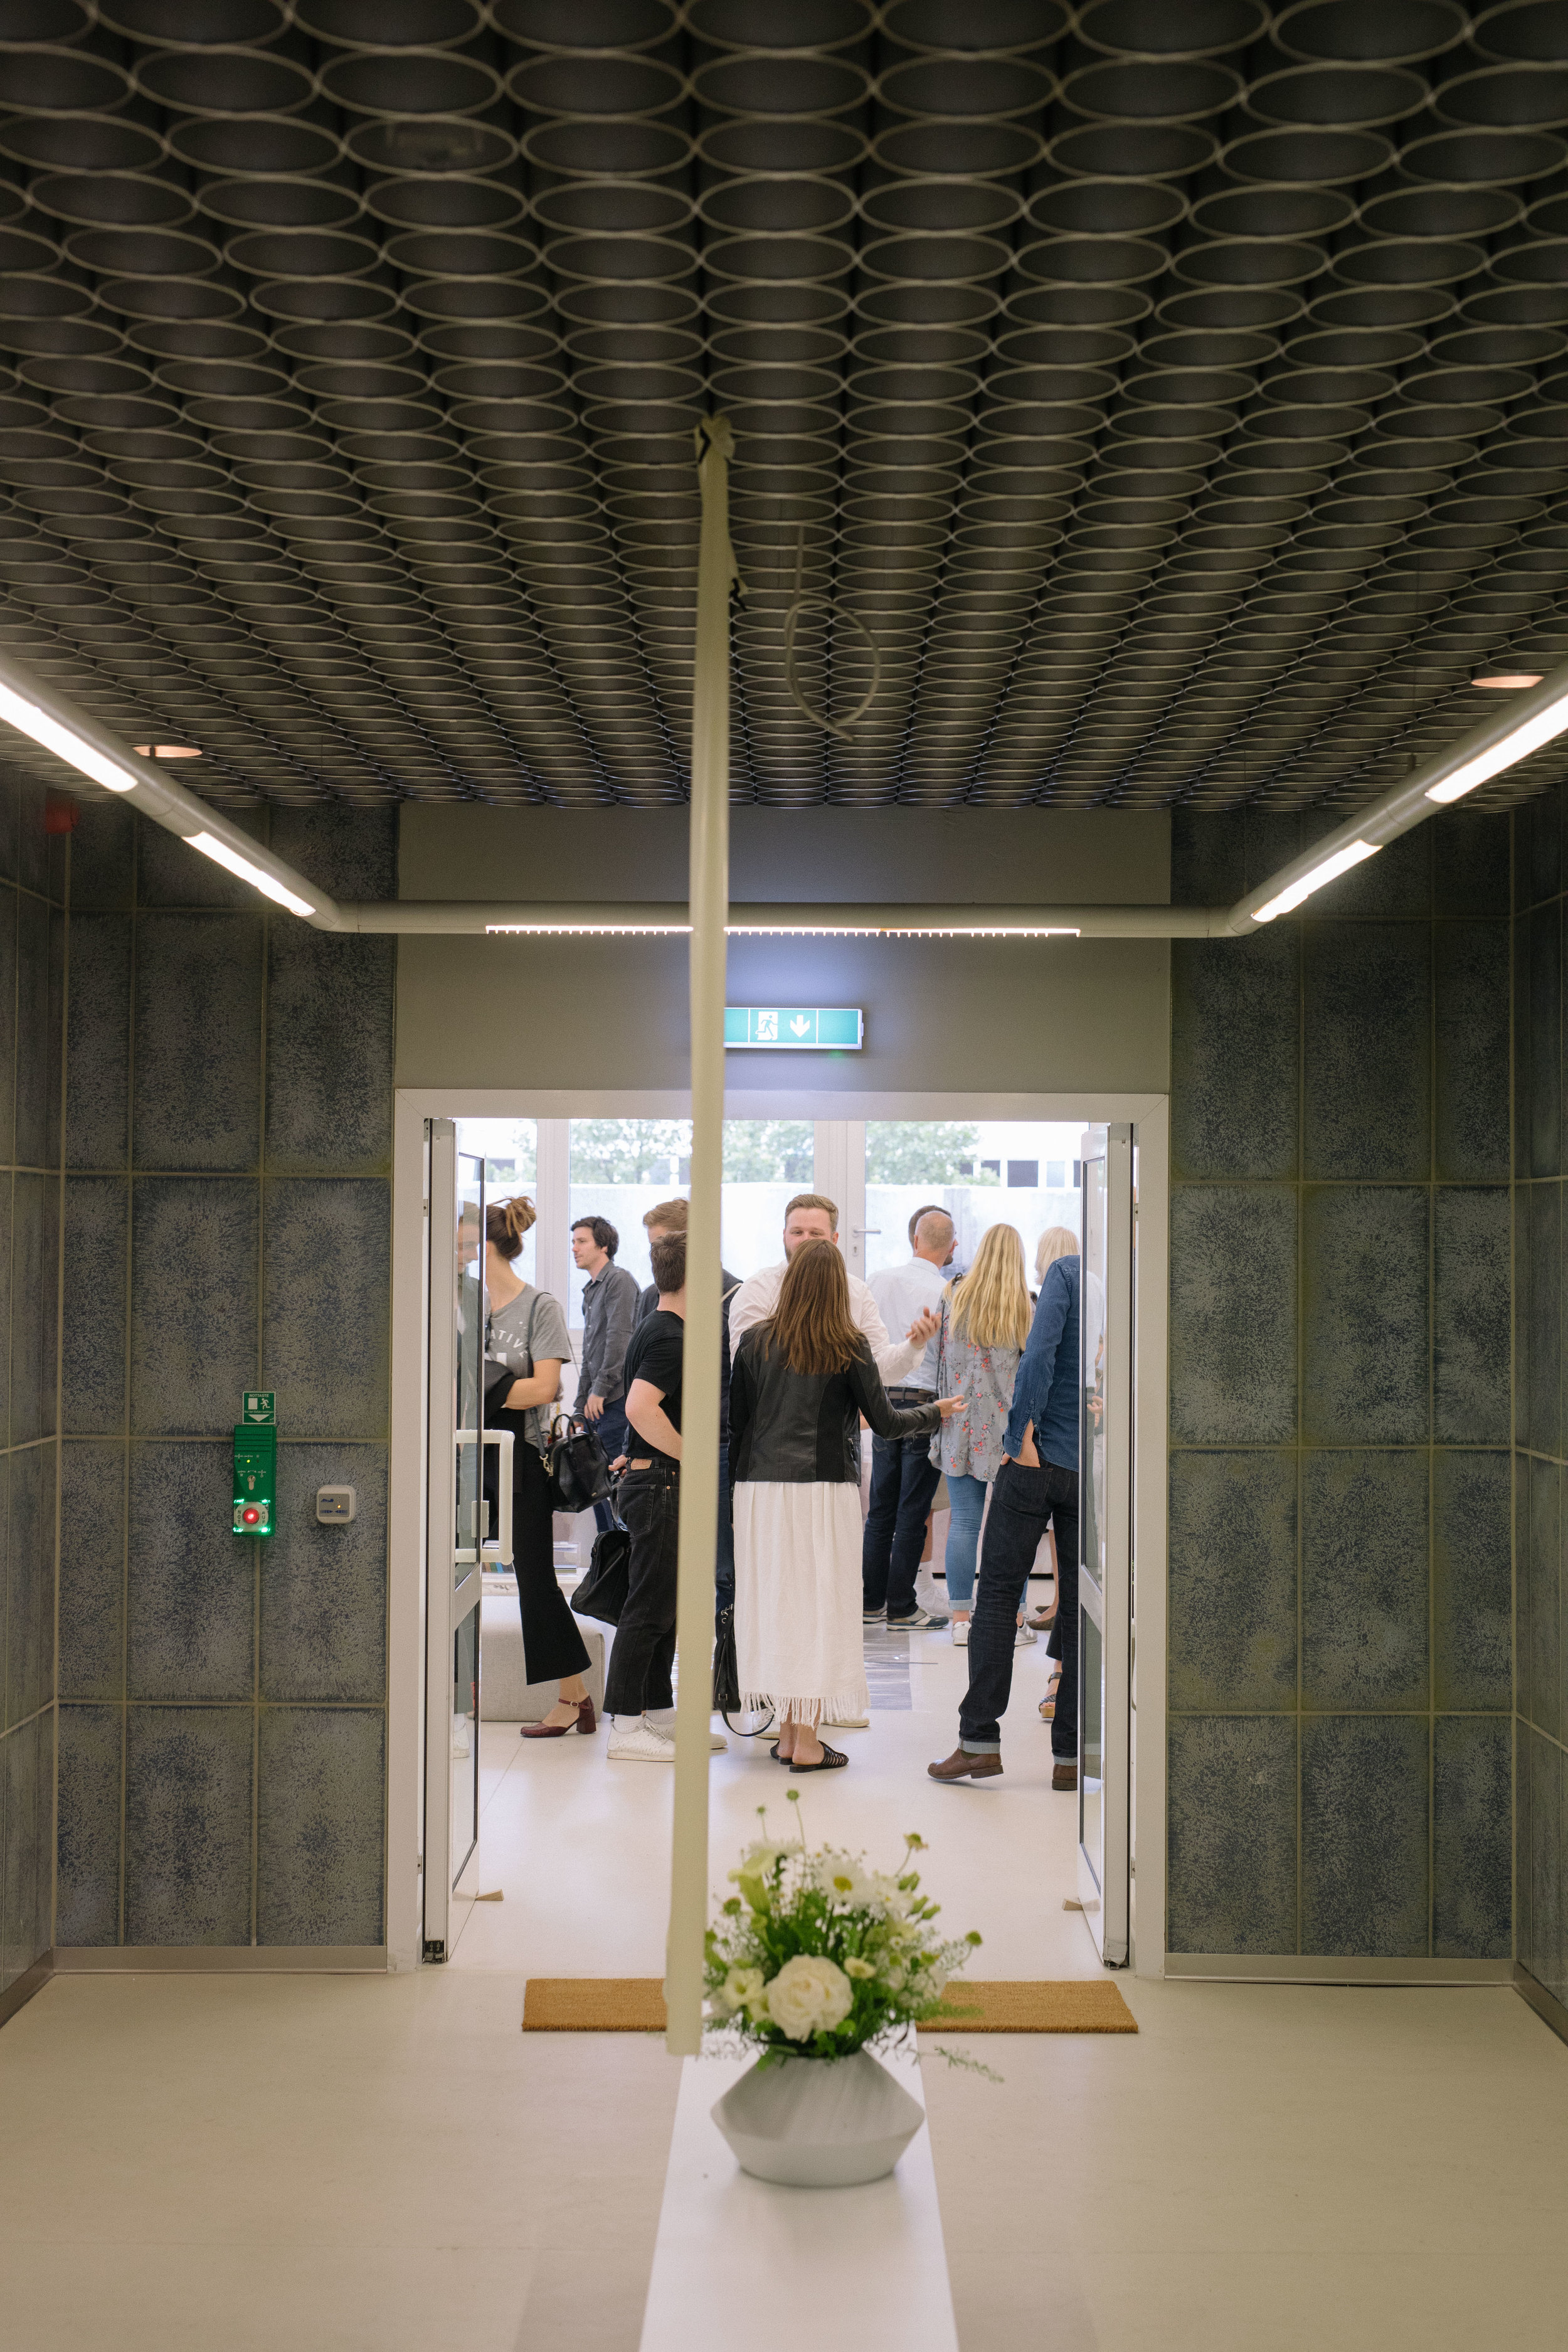 objekte-unserer-tage-3307-Flagship Store Opening-04.JPG